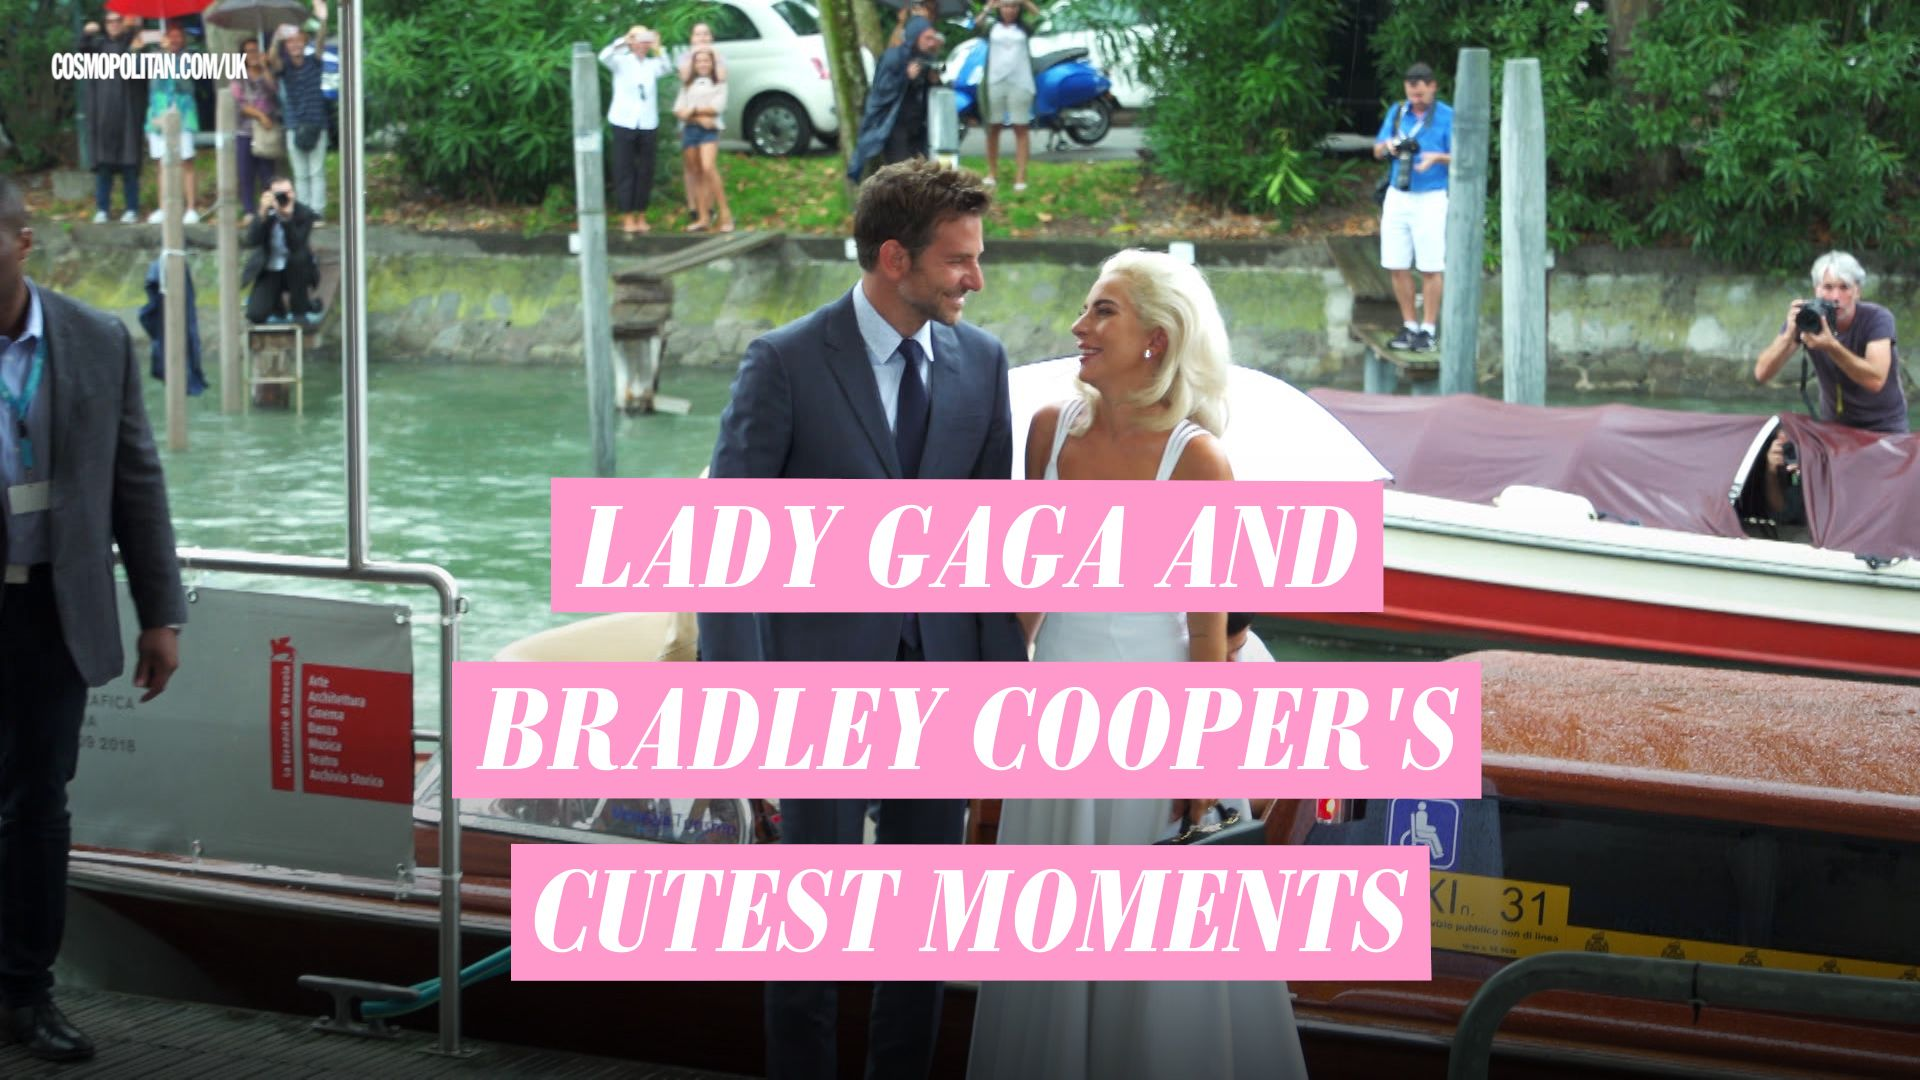 Bradley Cooper and Lady Gaga reportedly haven't seen each other since the Oscars